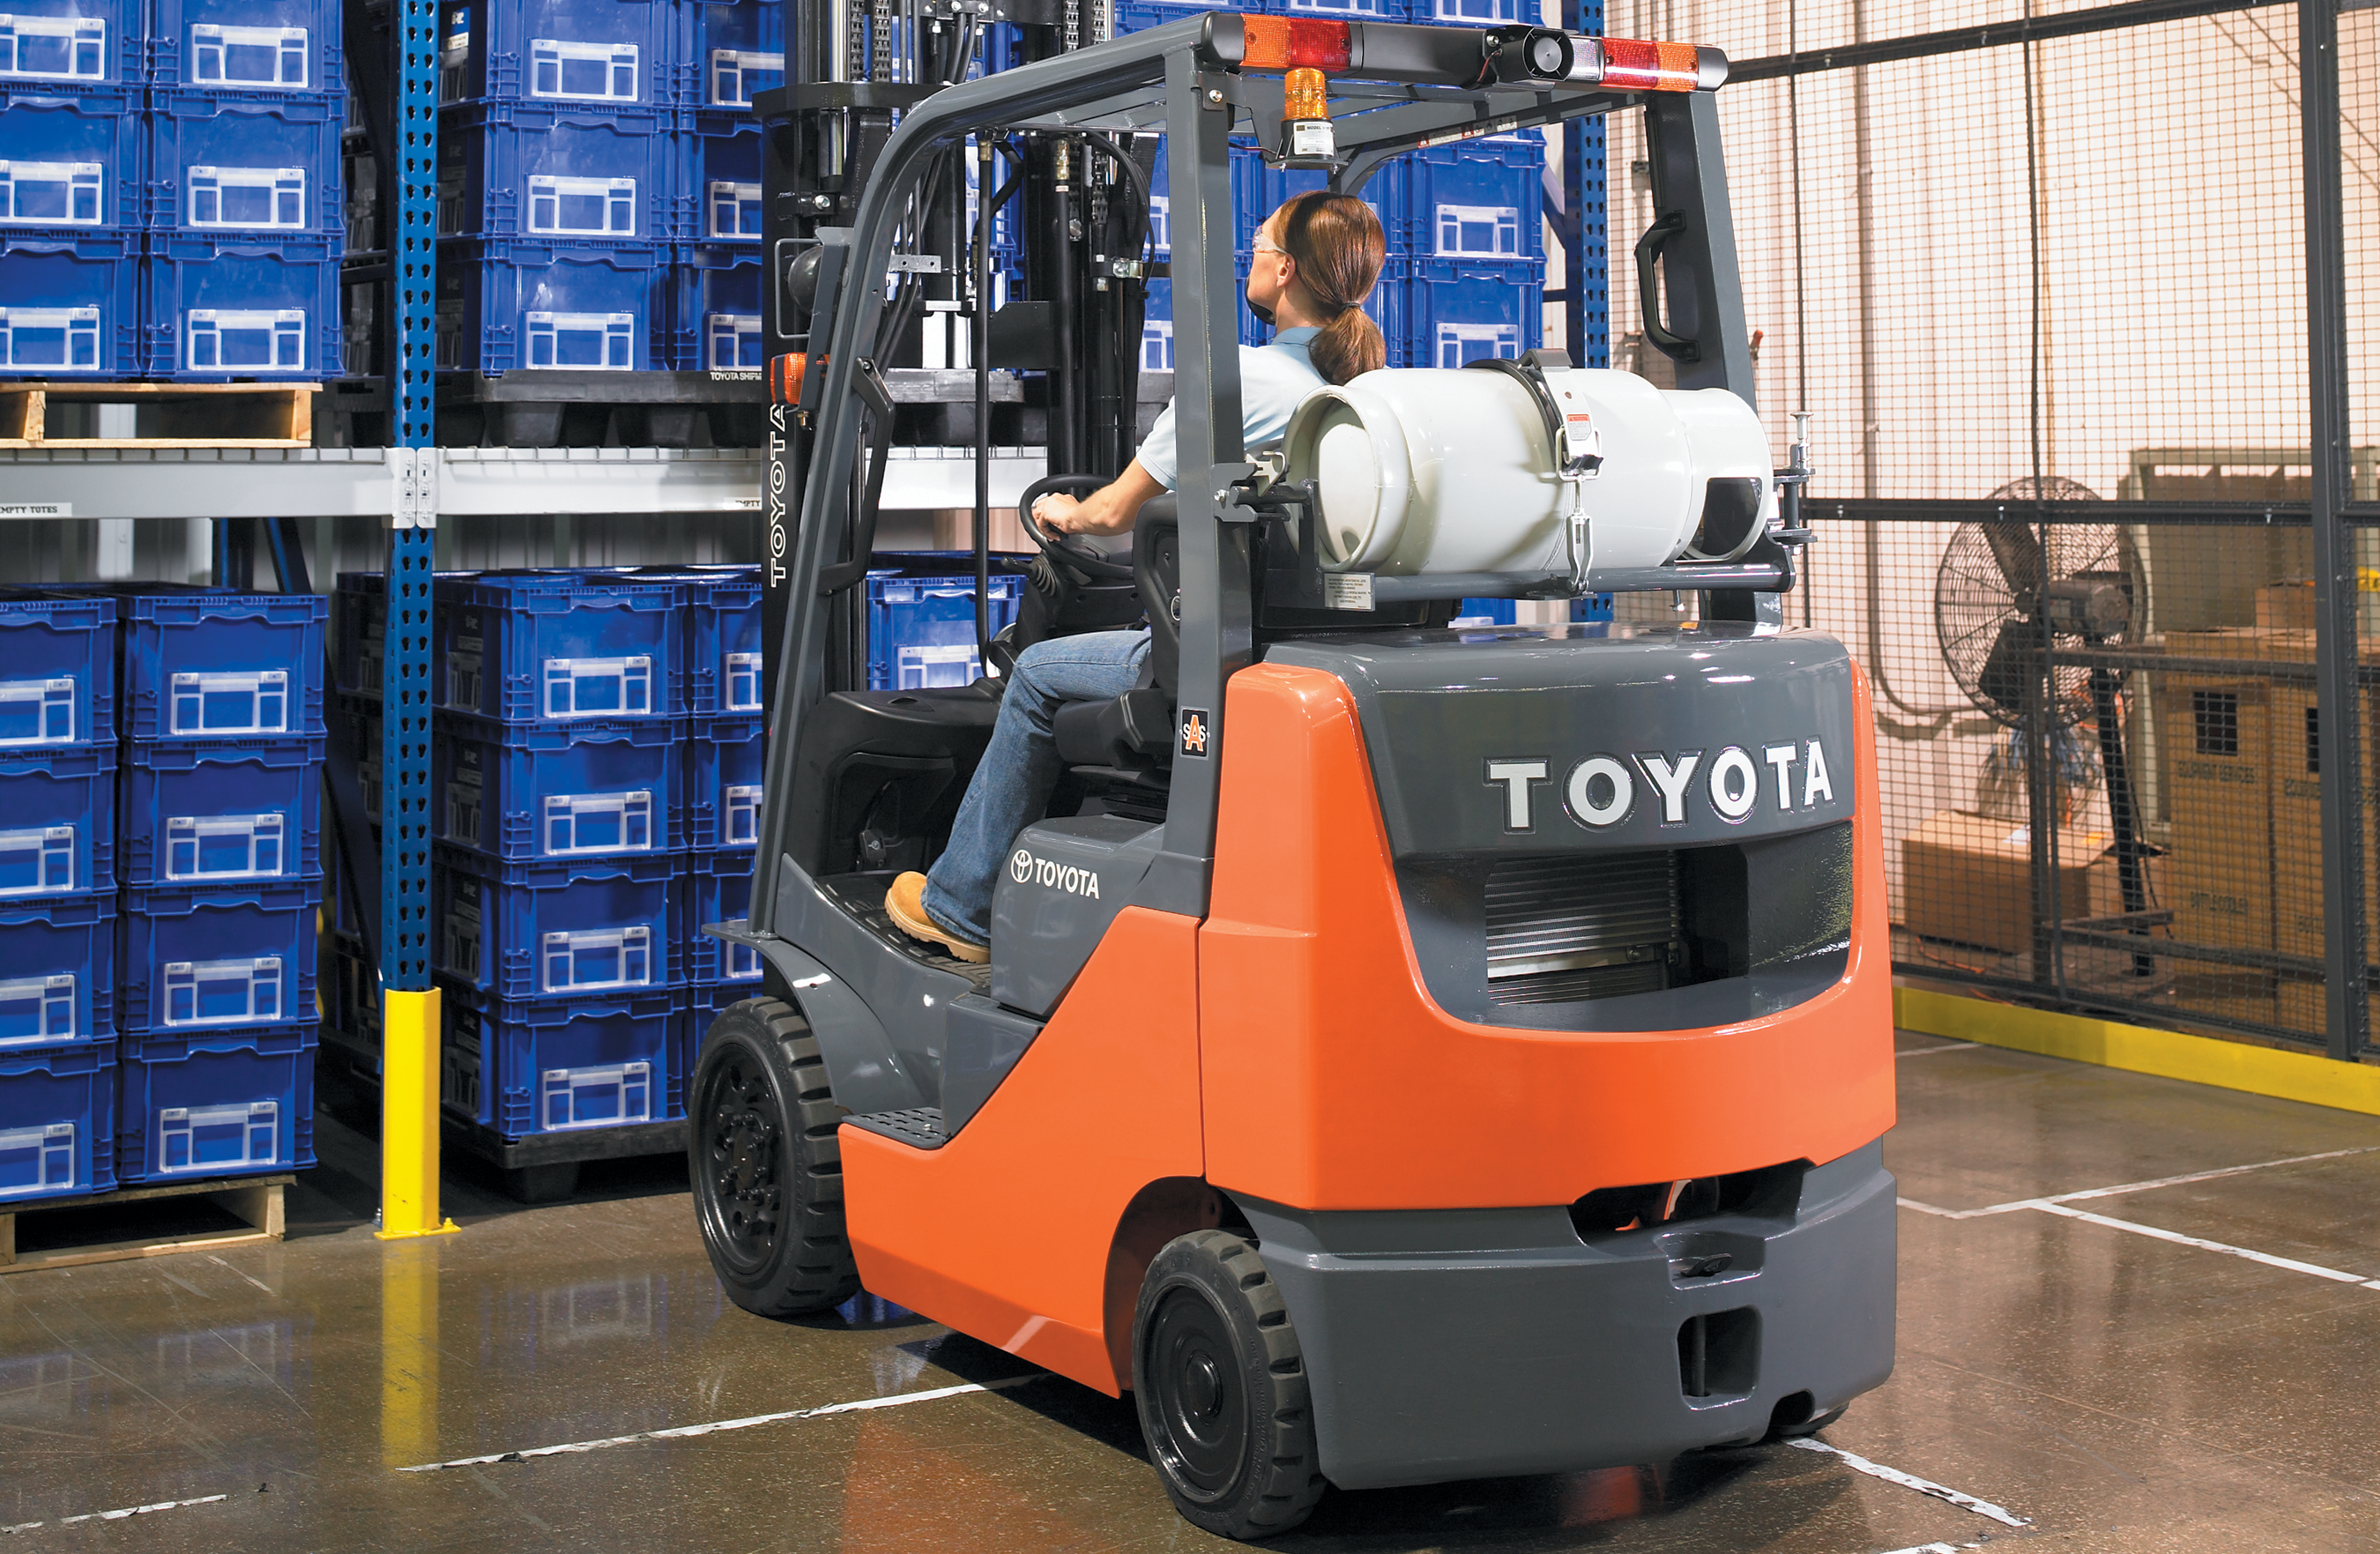 Toyota Core IC LP Forklift